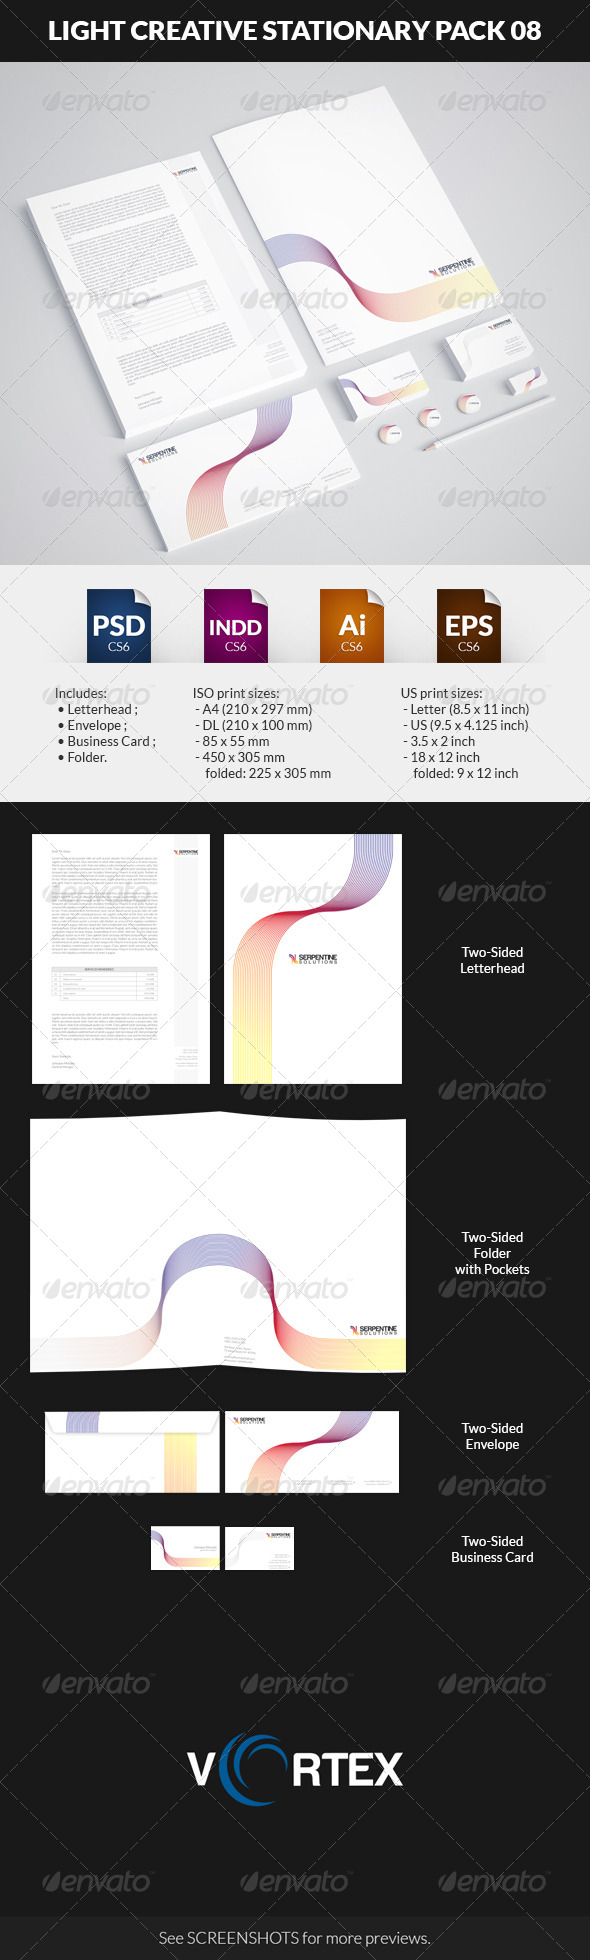 GraphicRiver Light Creative Stationary Pack 08 8742632